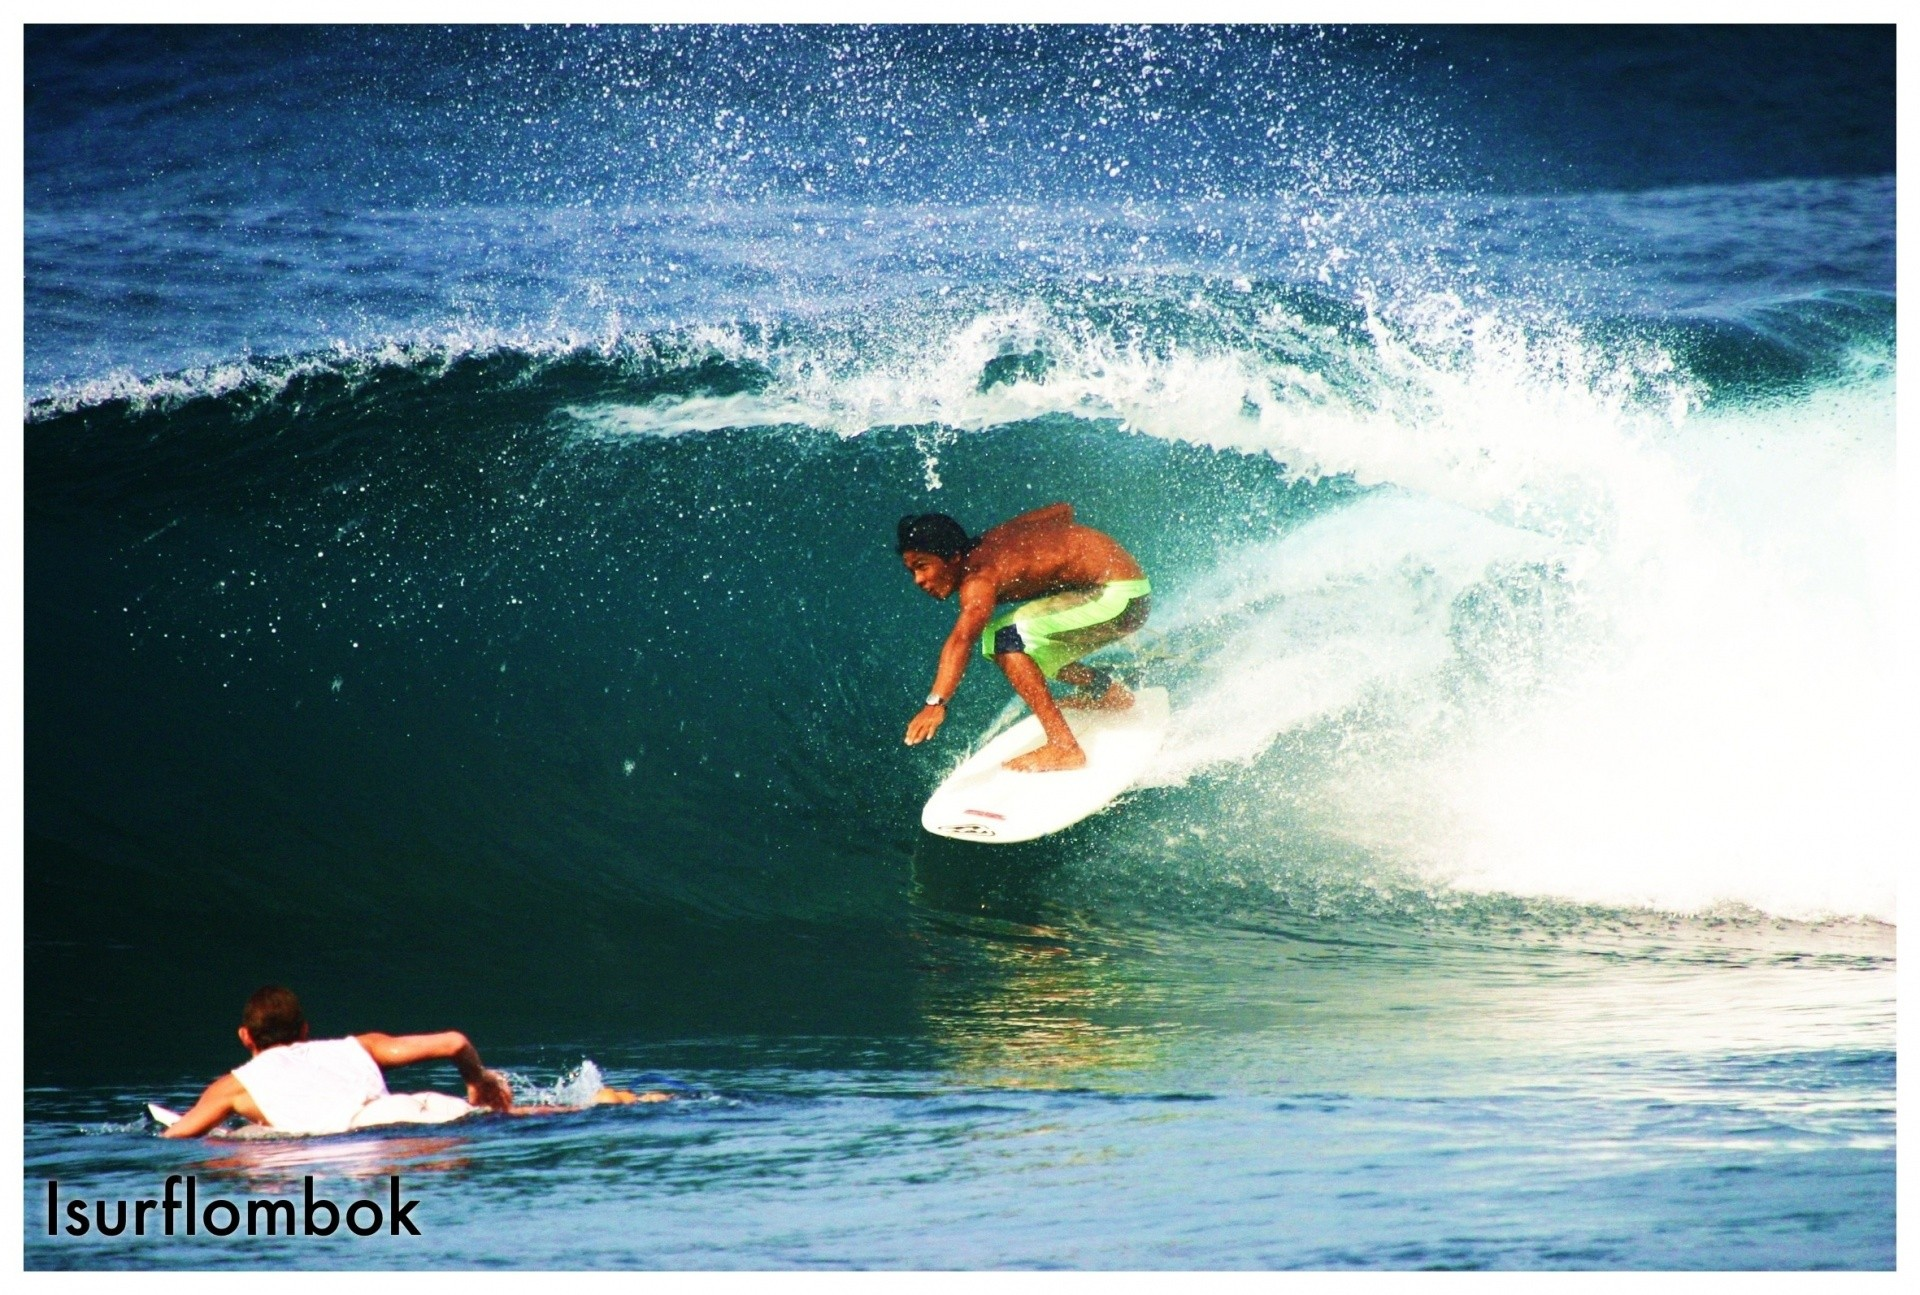 Risdog's photo of Kuta